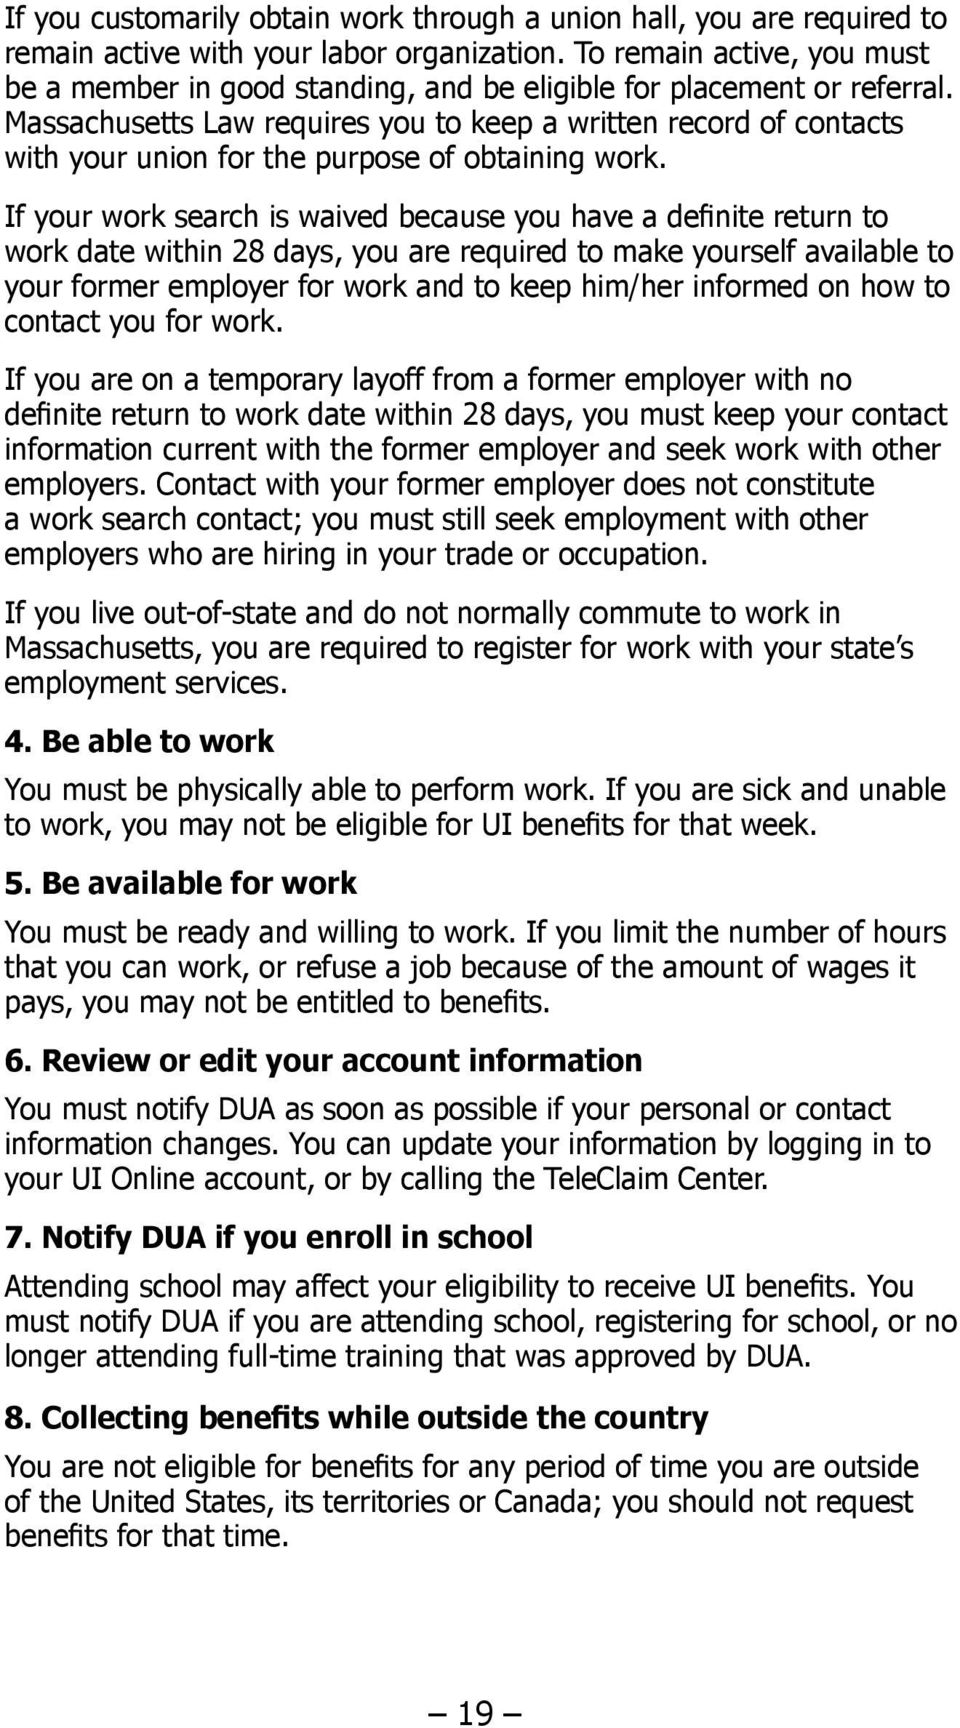 Massachusetts Law requires you to keep a written record of contacts with your union for the purpose of obtaining work.